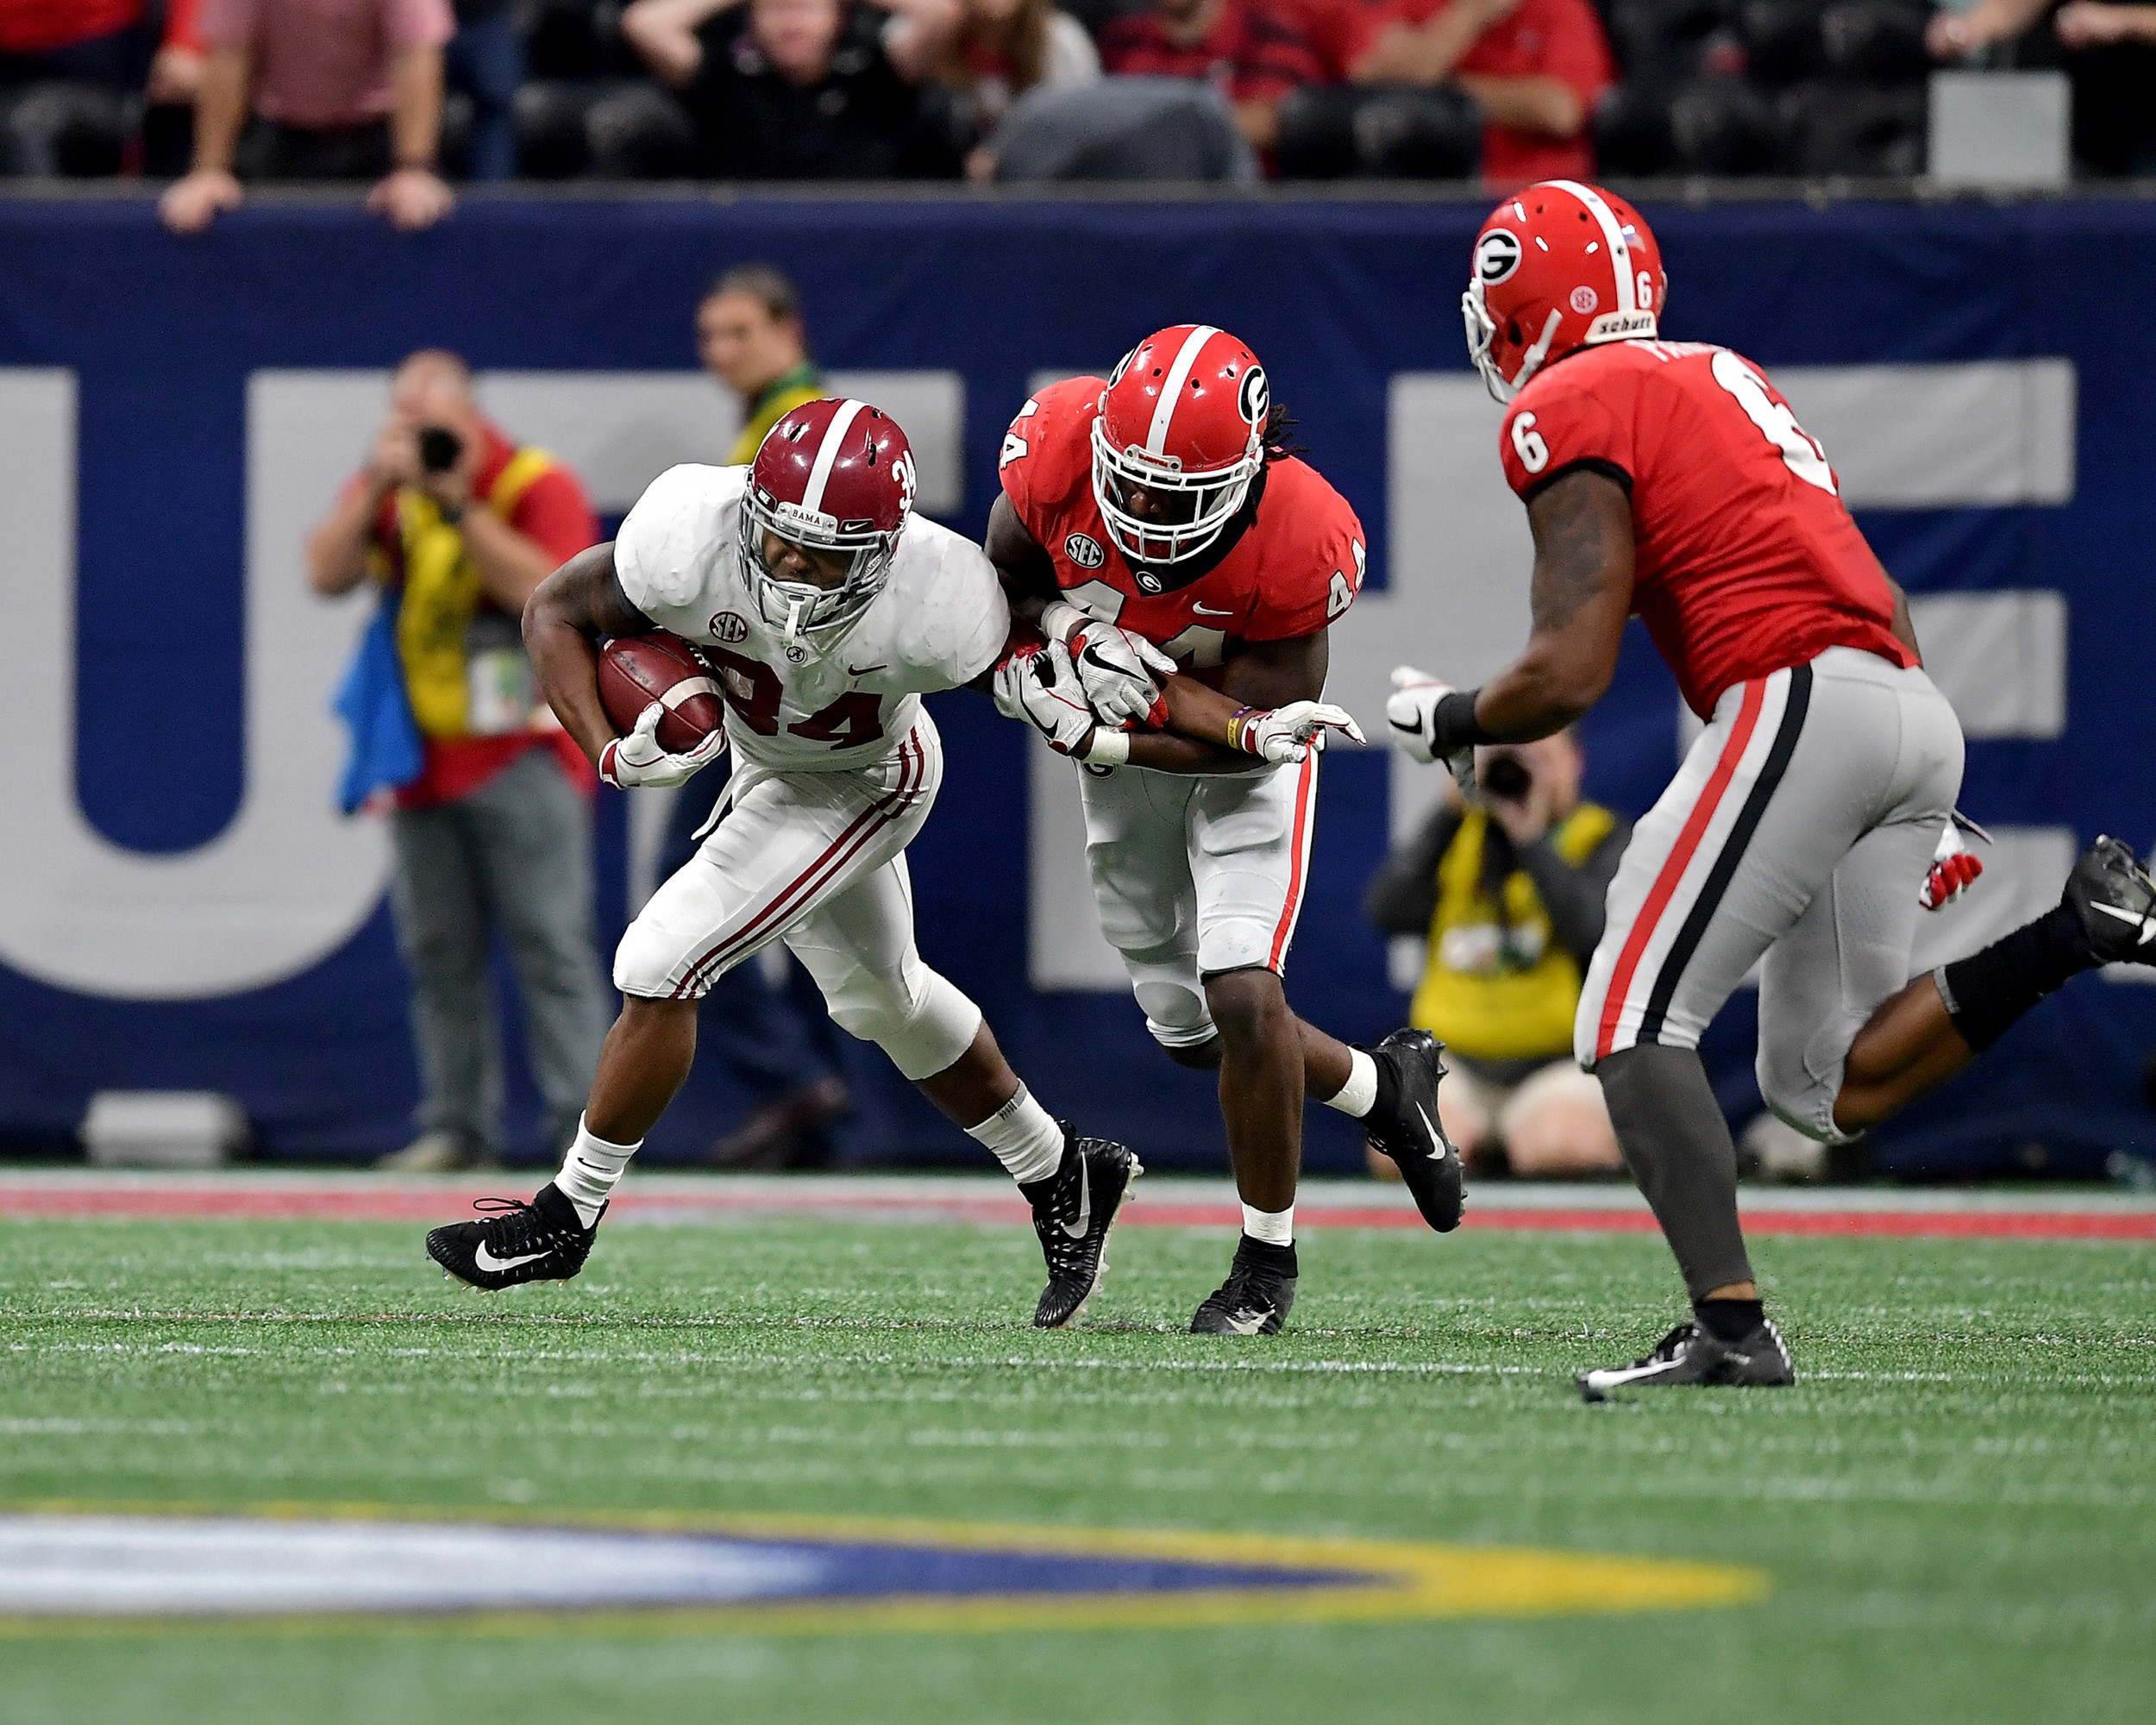 Alabama Crimson Tide running back Damien Harris (34) in action during the second half of the 2018 SEC Championship football game against the Georgia Bulldogs at Mercedes-Benz Stadium in Atlanta, Ga., on Dec. 1, 2018. Alabama wins 35-28. (Photo by Lee Walls)